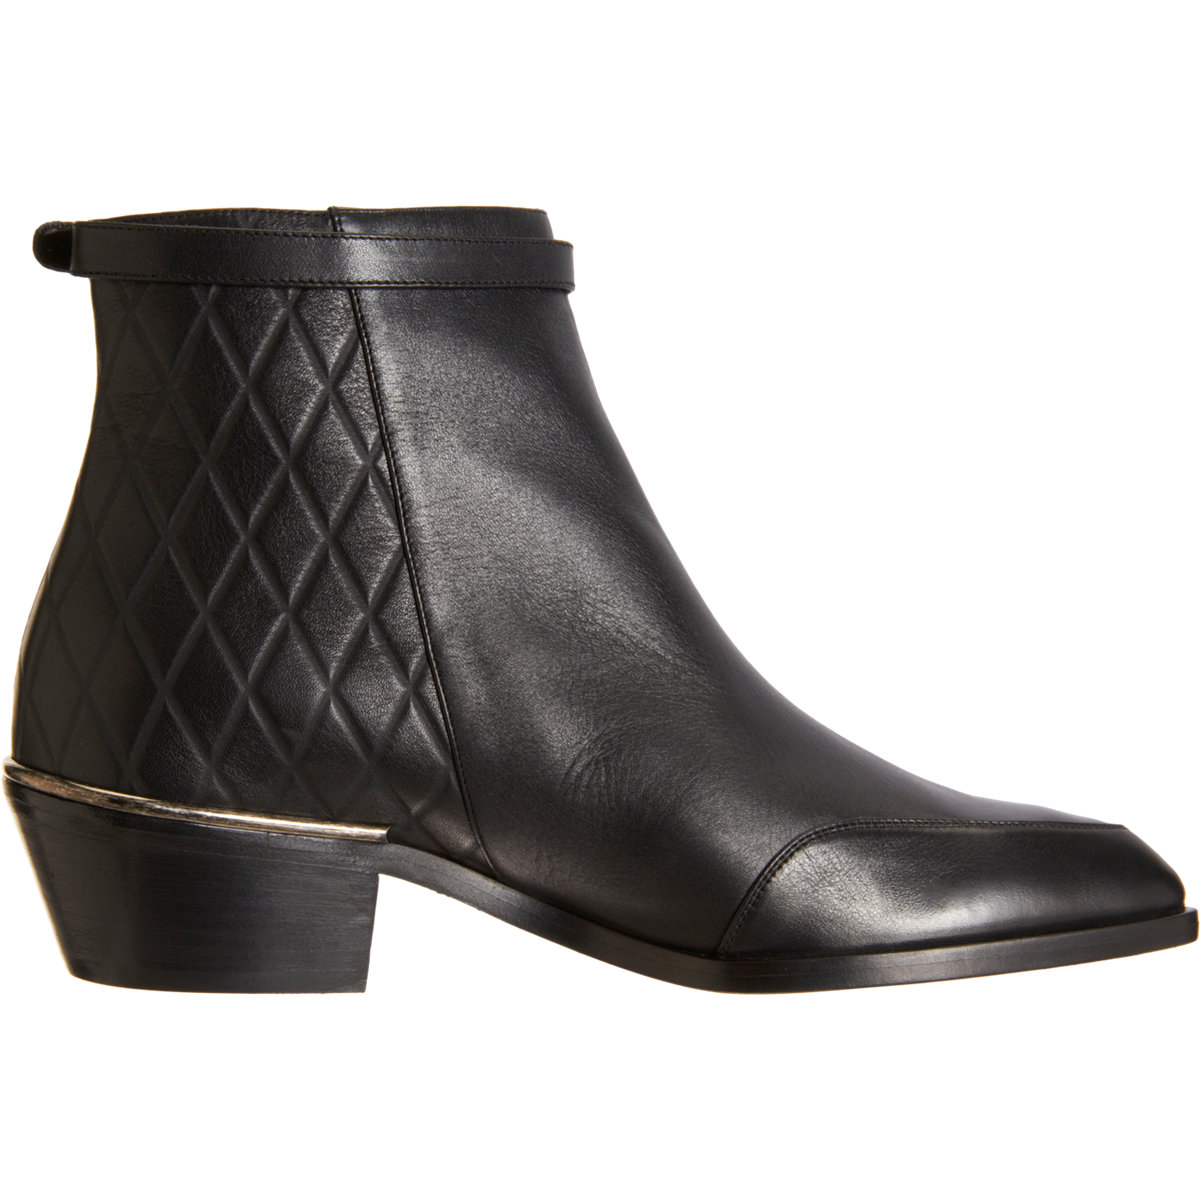 Chloé Quilted Ankle Boots cheap price wholesale 8VlXoZb